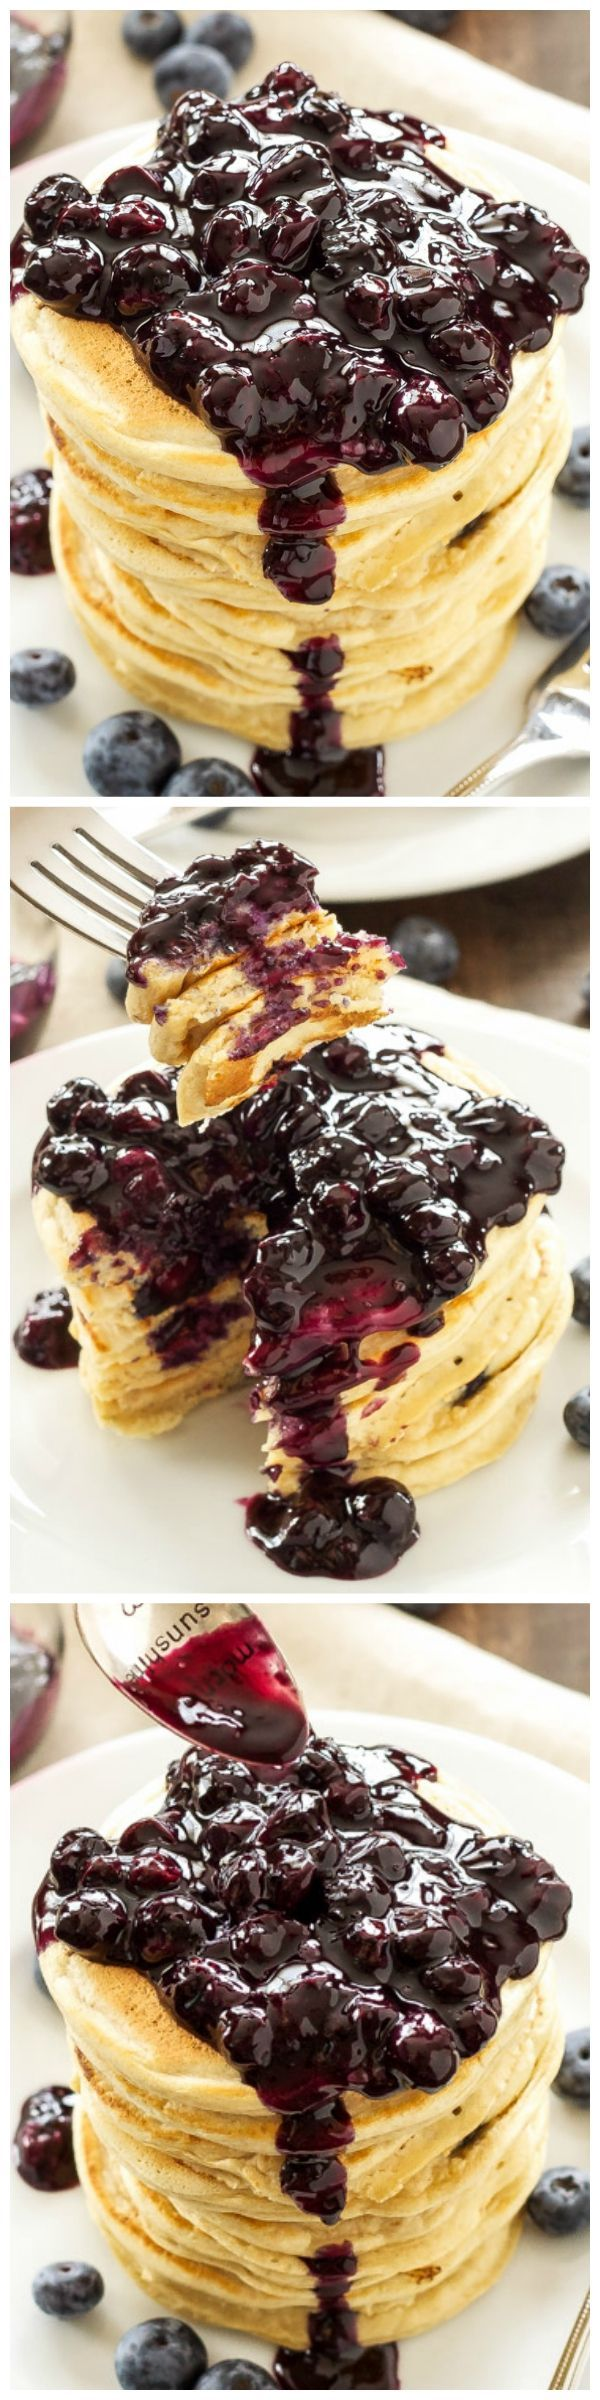 Blueberry Vanilla Protein Pancakes - Delicious whole wheat pancakes with added protein thanks to vanilla protein powder. Ingredients Pancakes 1 1/4 cup whole wheat pastry flour 2 scoops EAS 100% Whey Vanilla Protein Powder 1 tablespoon baking powder 1/2 teaspoon kosher salt 1 1/3 cups milk of choice 2 tablespoons plain non fat Greek yogurt 1 egg white 2 teaspoons vanilla extract 1/2 pint fresh blueberries Top them with a fresh blueberry sauce for a protein packed power breakfast!